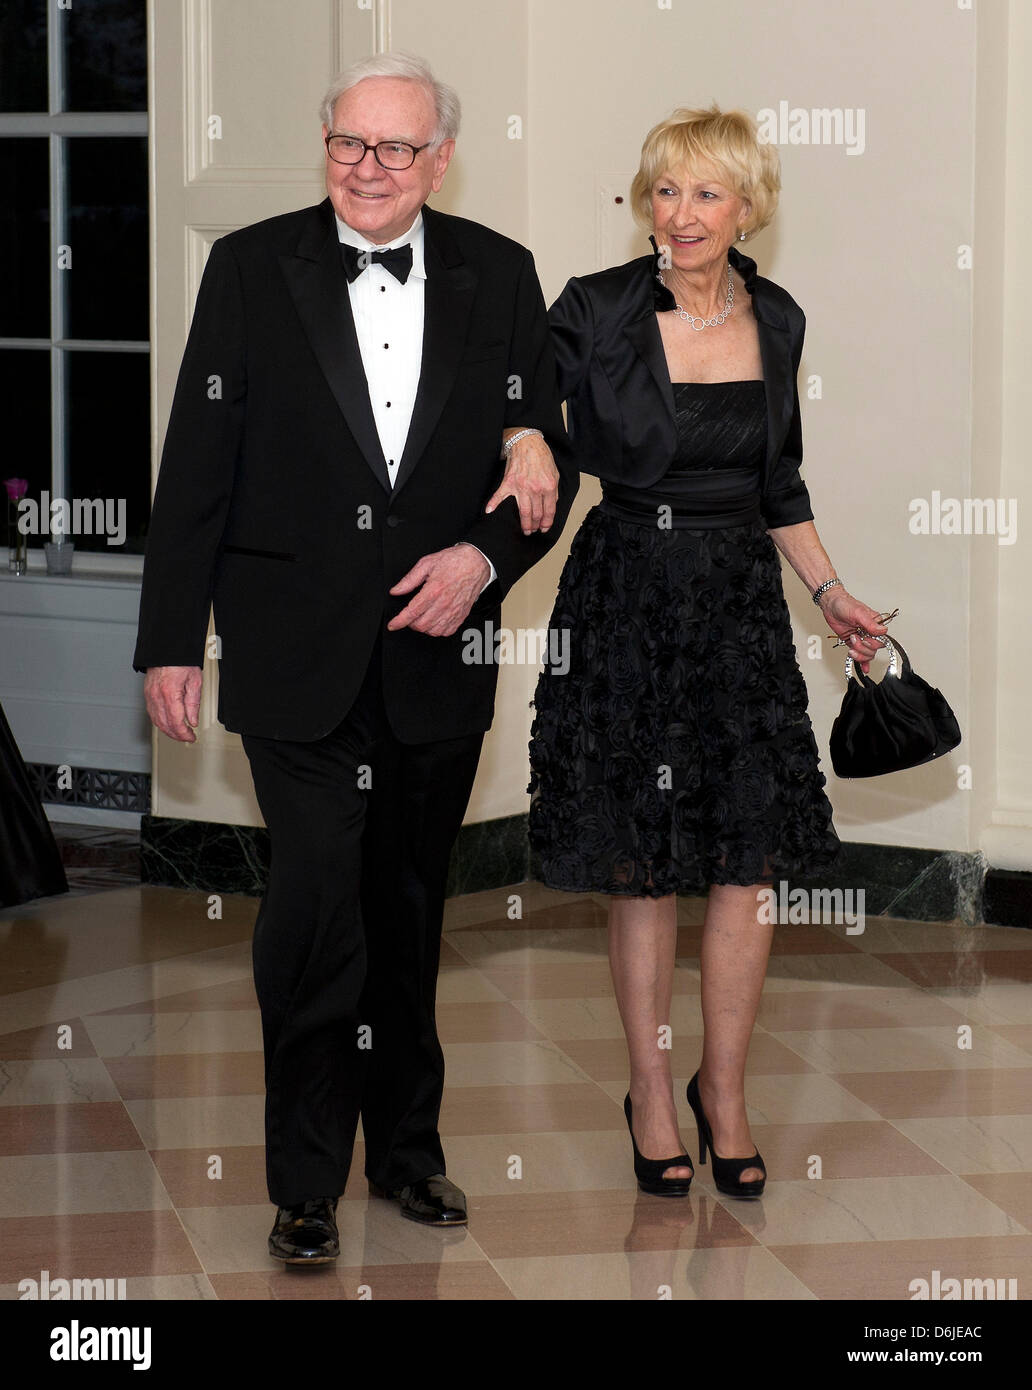 Warren Buffett and Astrid M. Buffett arrive for the Official Dinner in honor of Prime Minister David Cameron of - Stock Image